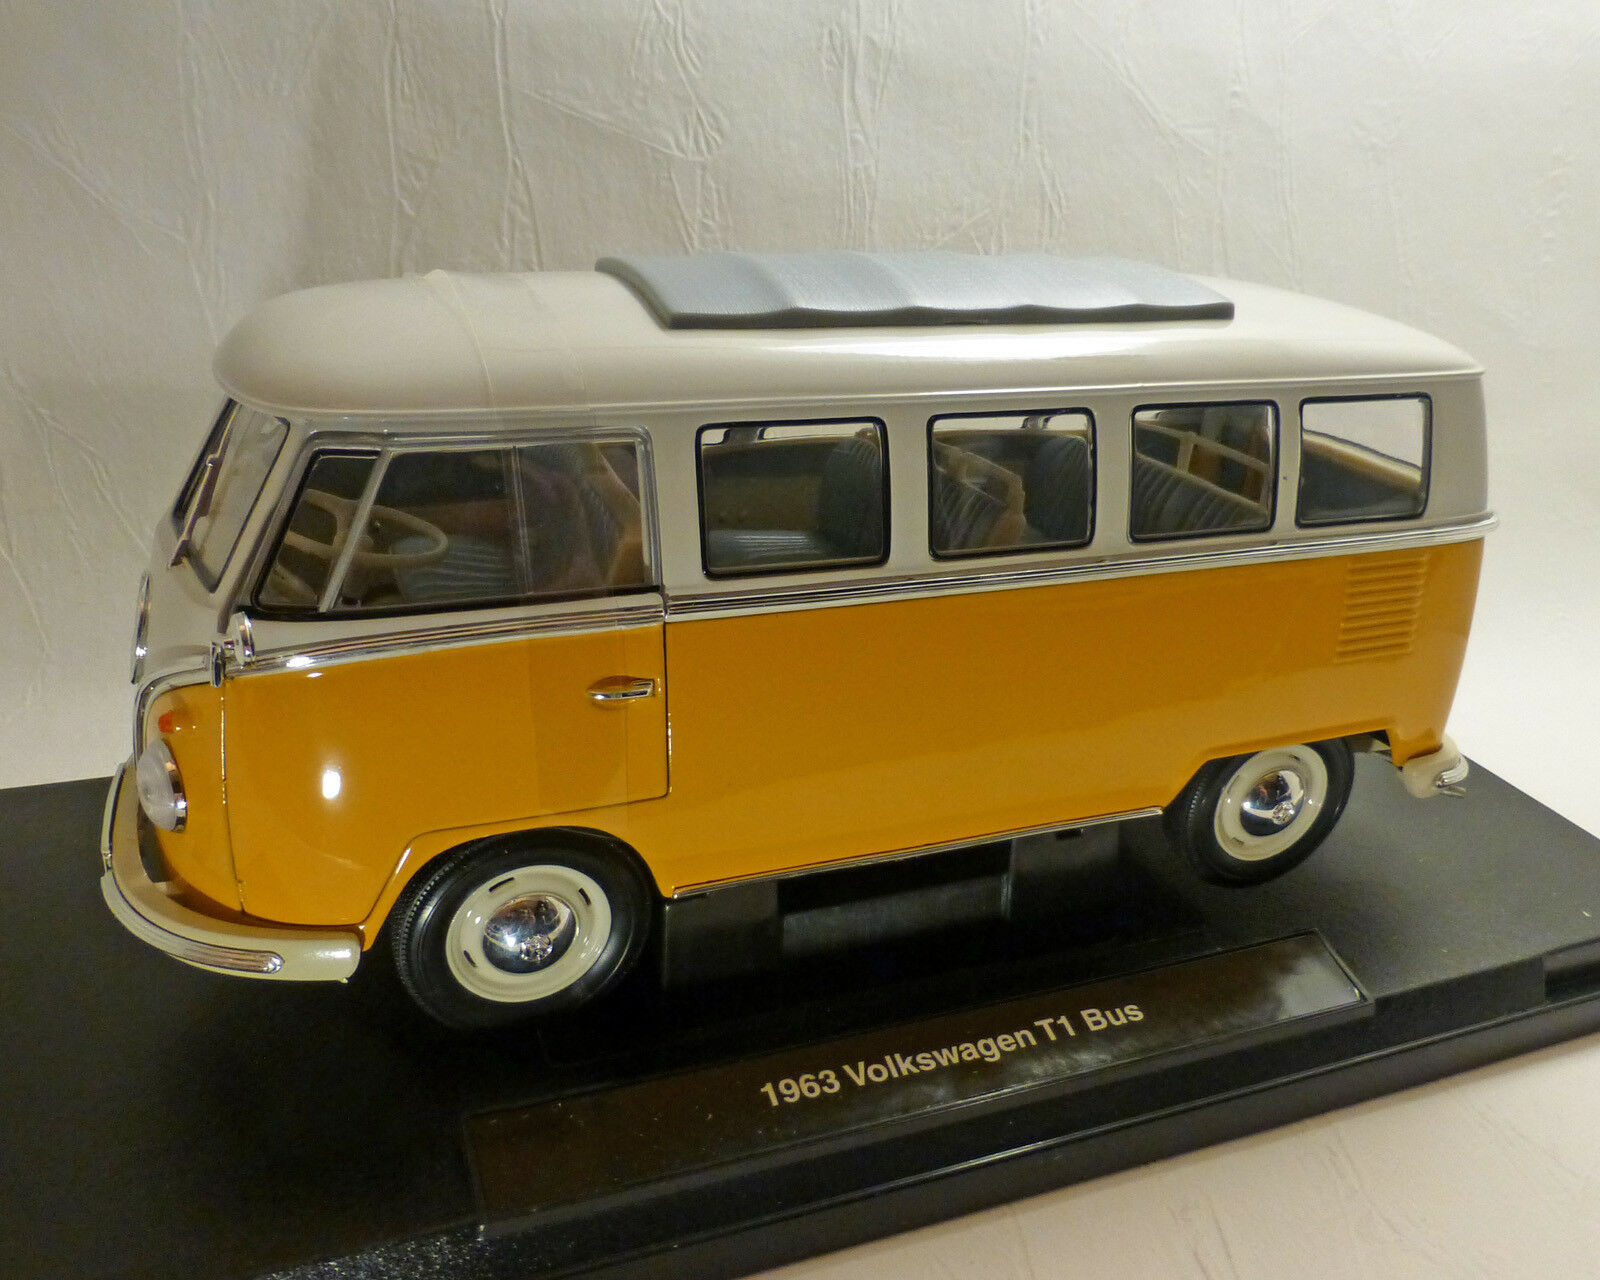 VW t1-bus, t1-bus, t1-bus, 1963, jaune 1 18, Welly 0ebf8b